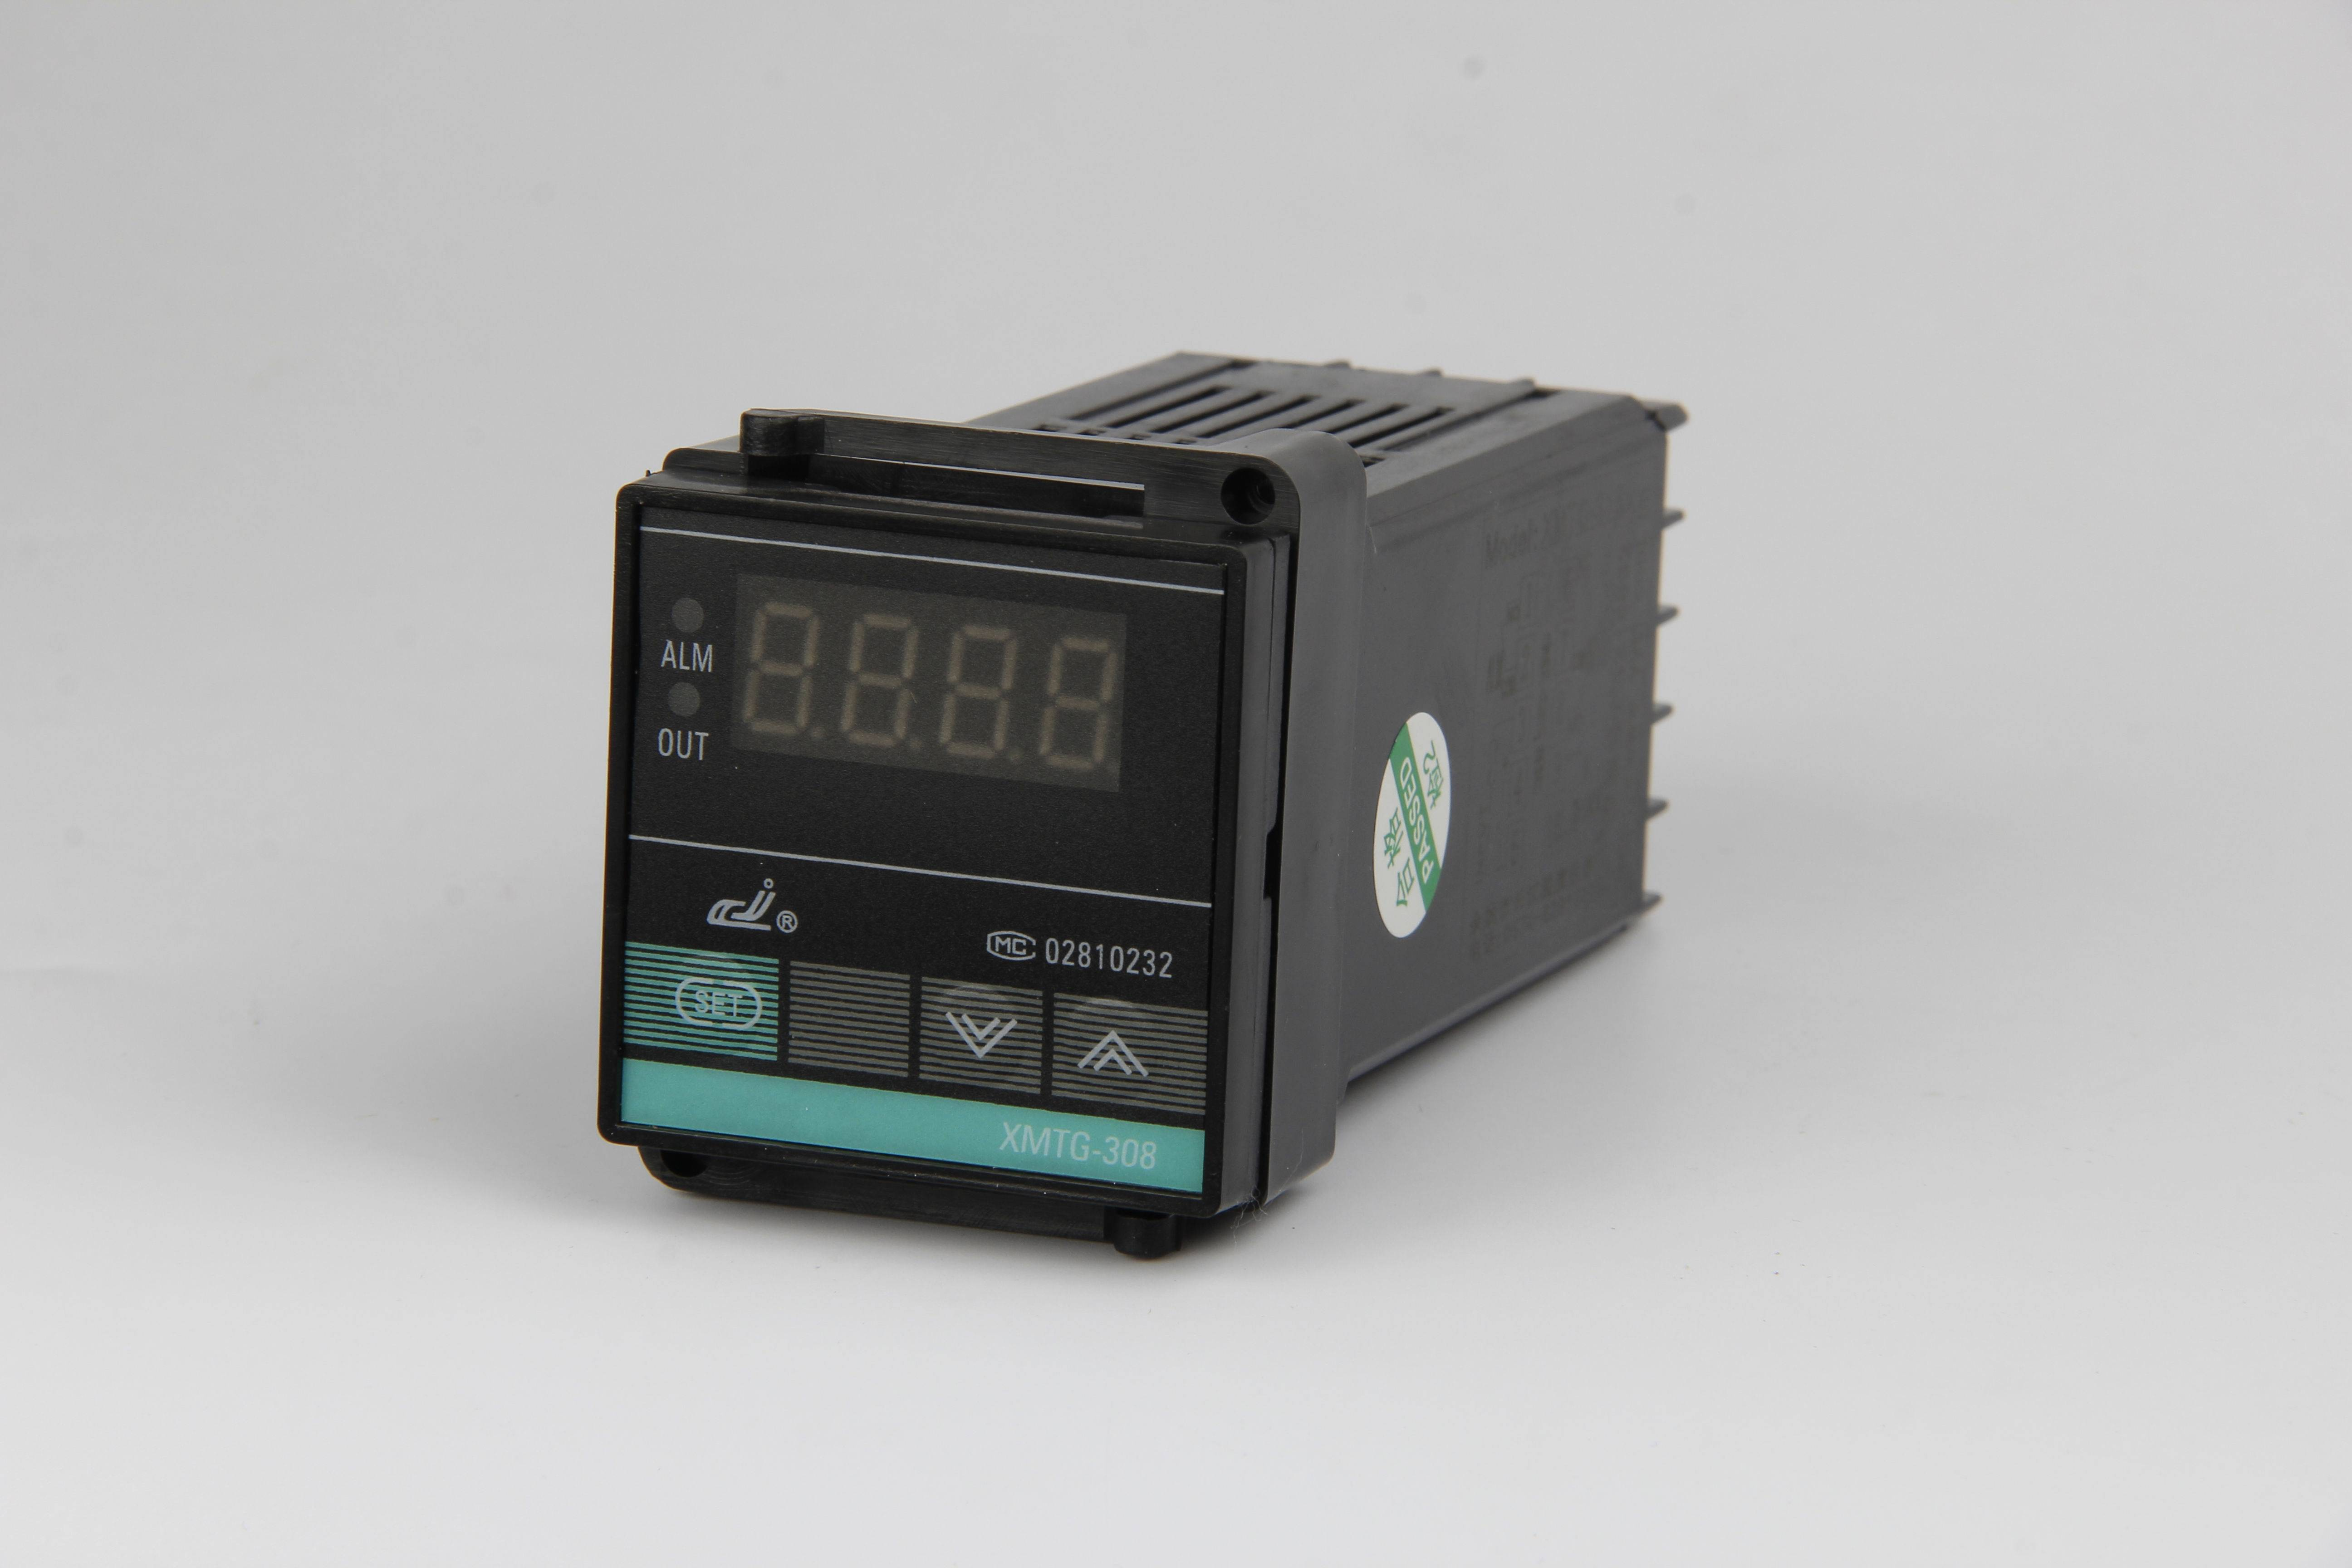 OEM/ODM Manufacturer 2018 Digital Temperature Controller For Incubator Featured Image